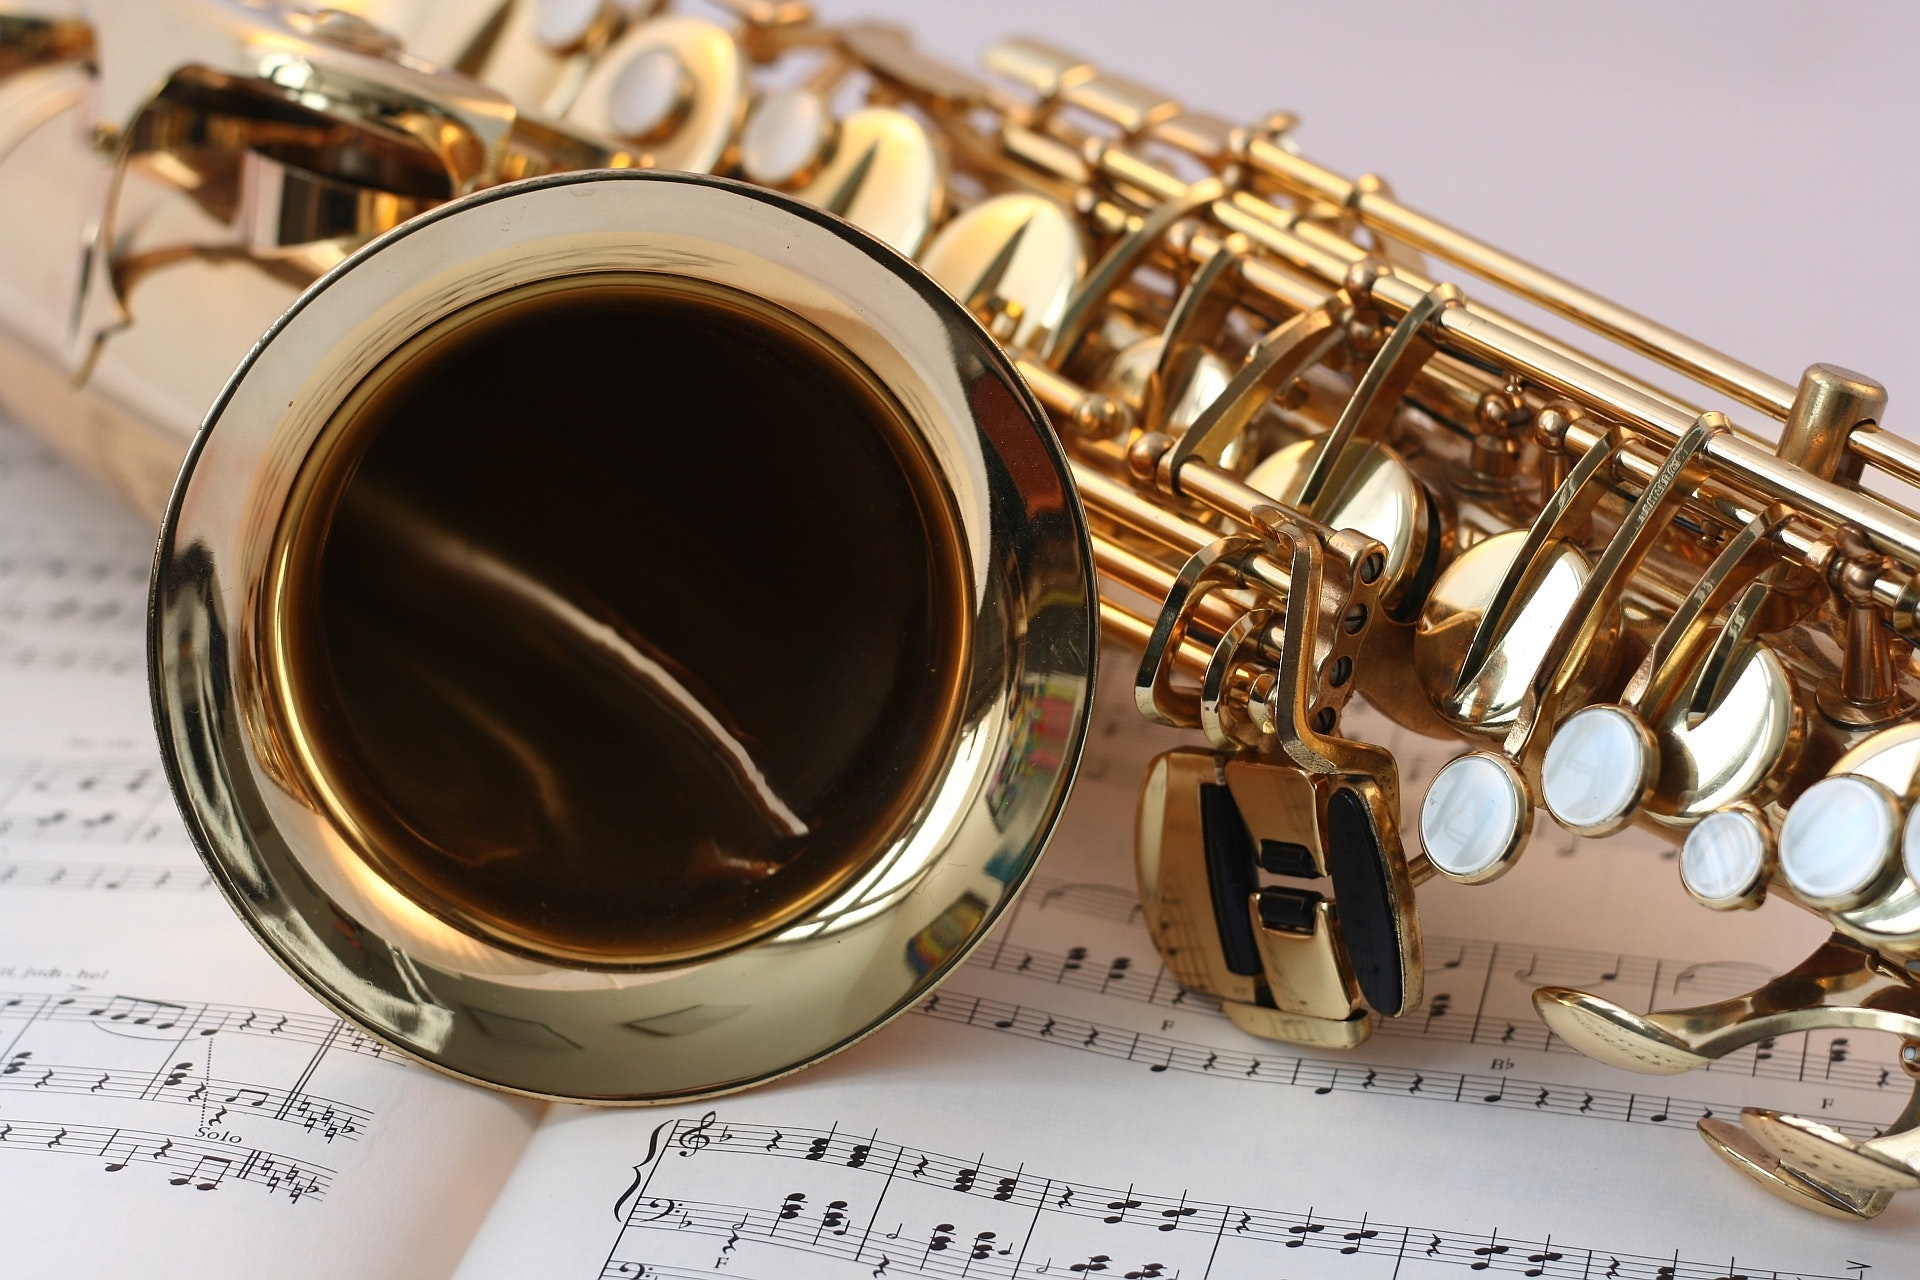 Saxophone with music